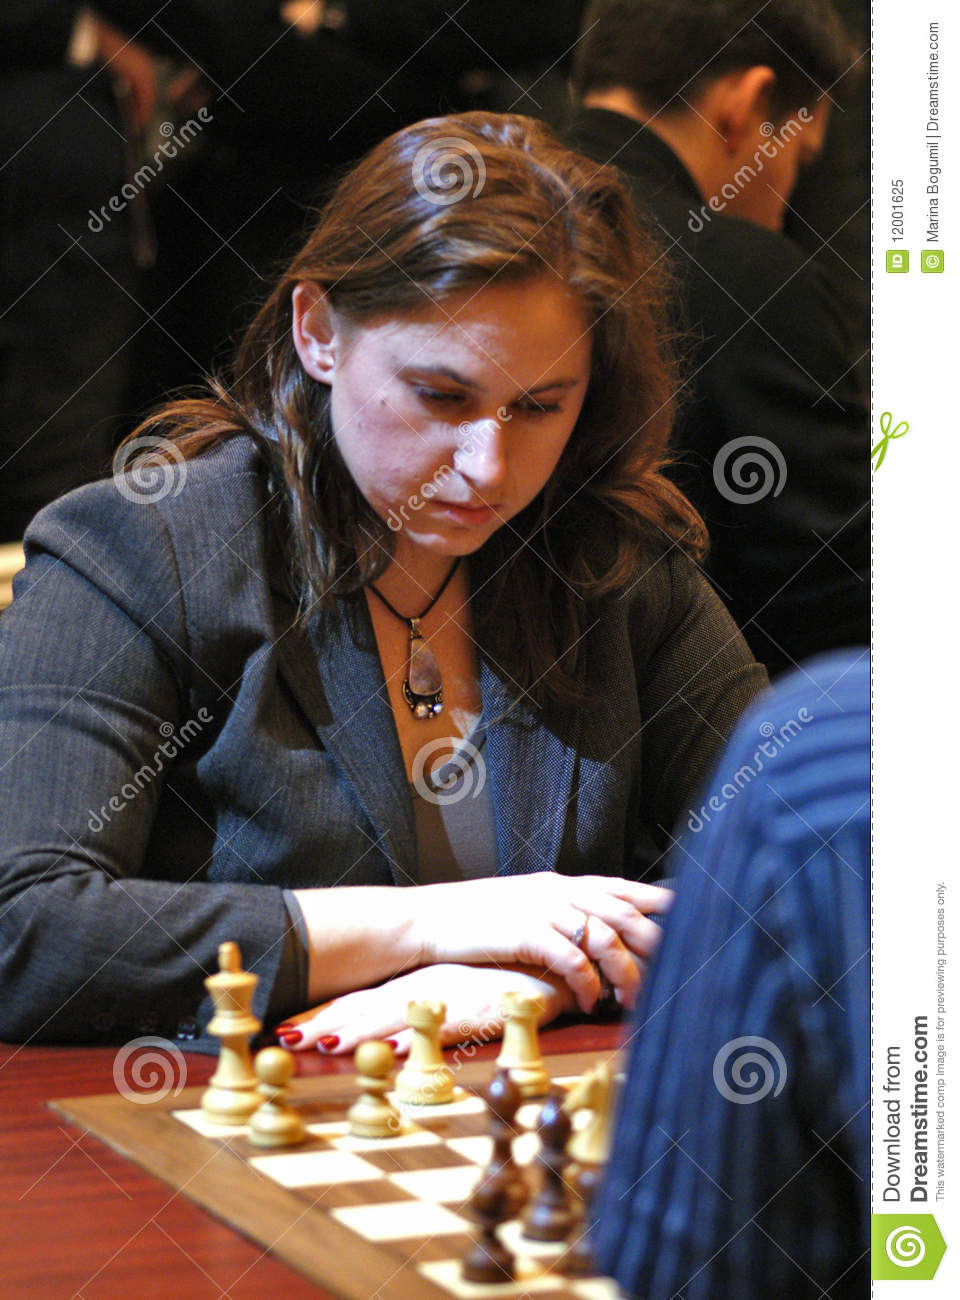 Watch Judit Polgar chess video